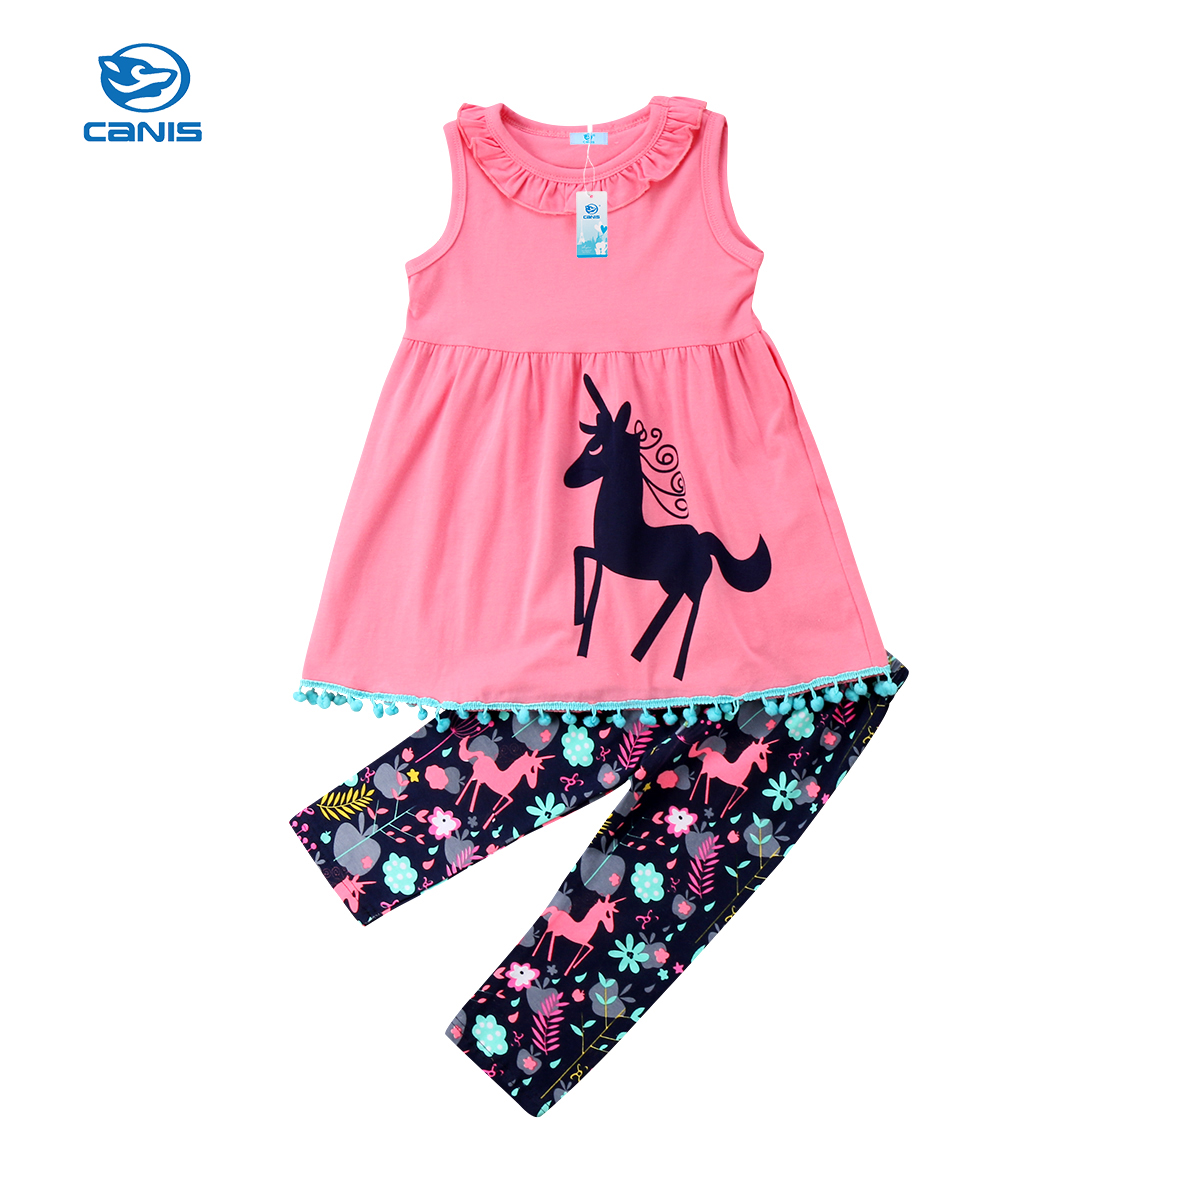 2018 Brand New Toddler Infant Kids Baby Girls Unicorn Flower Clothes T-shirt Top Dress Long Pants 2Pcs Set Summer Cartoon Outfit fashion 2pcs set newborn baby girls jumpsuit toddler girls flower pattern outfit clothes romper bodysuit pants